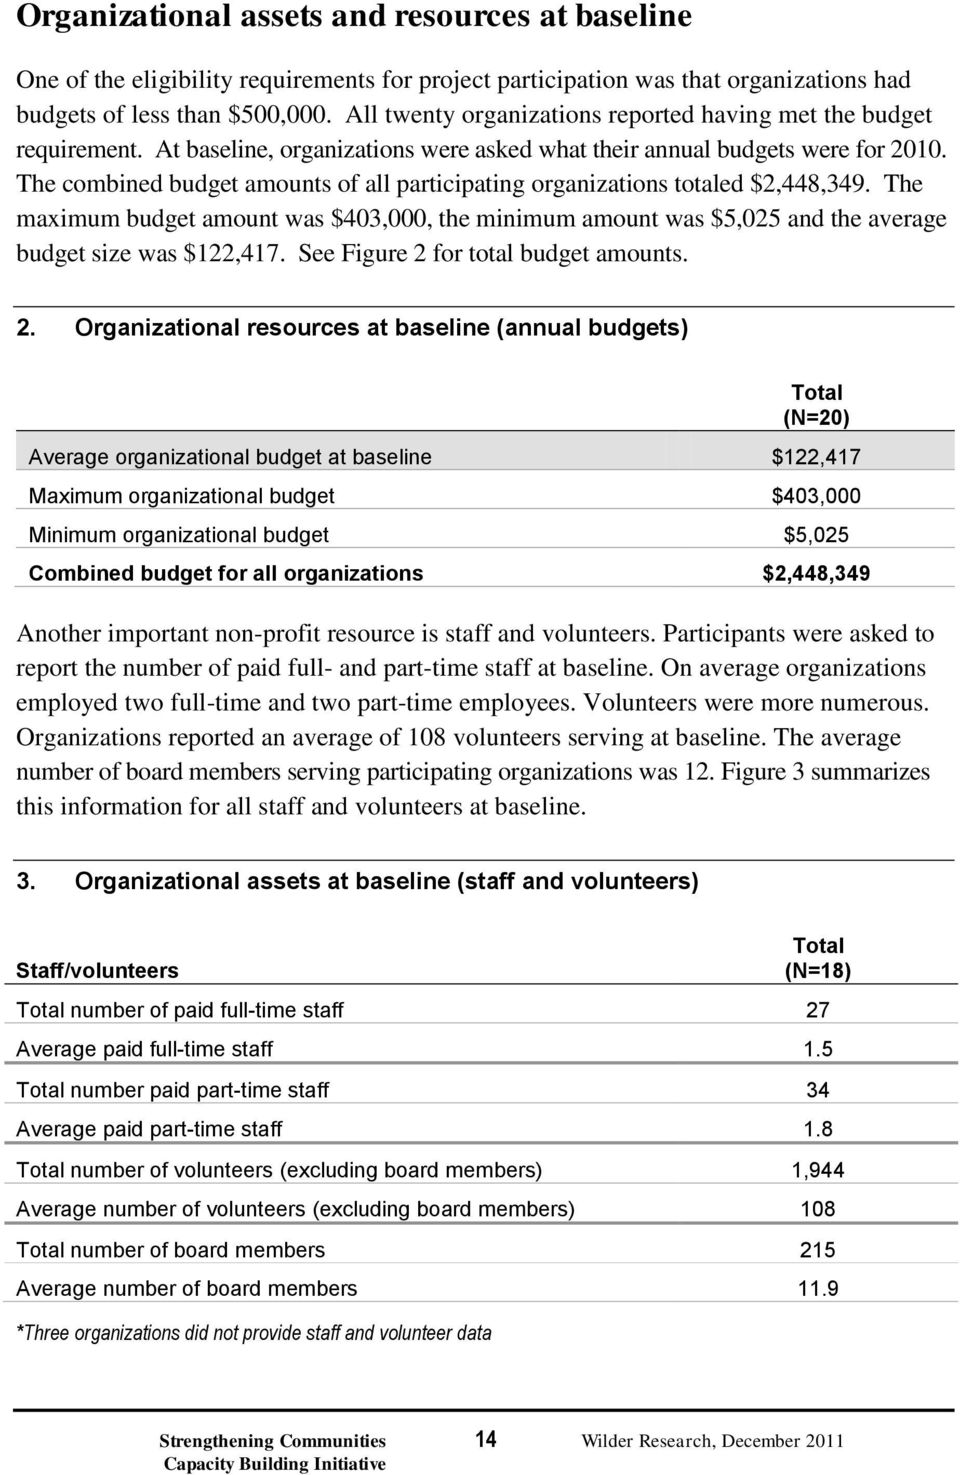 The combined budget amounts of all participating organizations totaled $2,448,349. The maximum budget amount was $403,000, the minimum amount was $5,025 and the average budget size was $122,417.